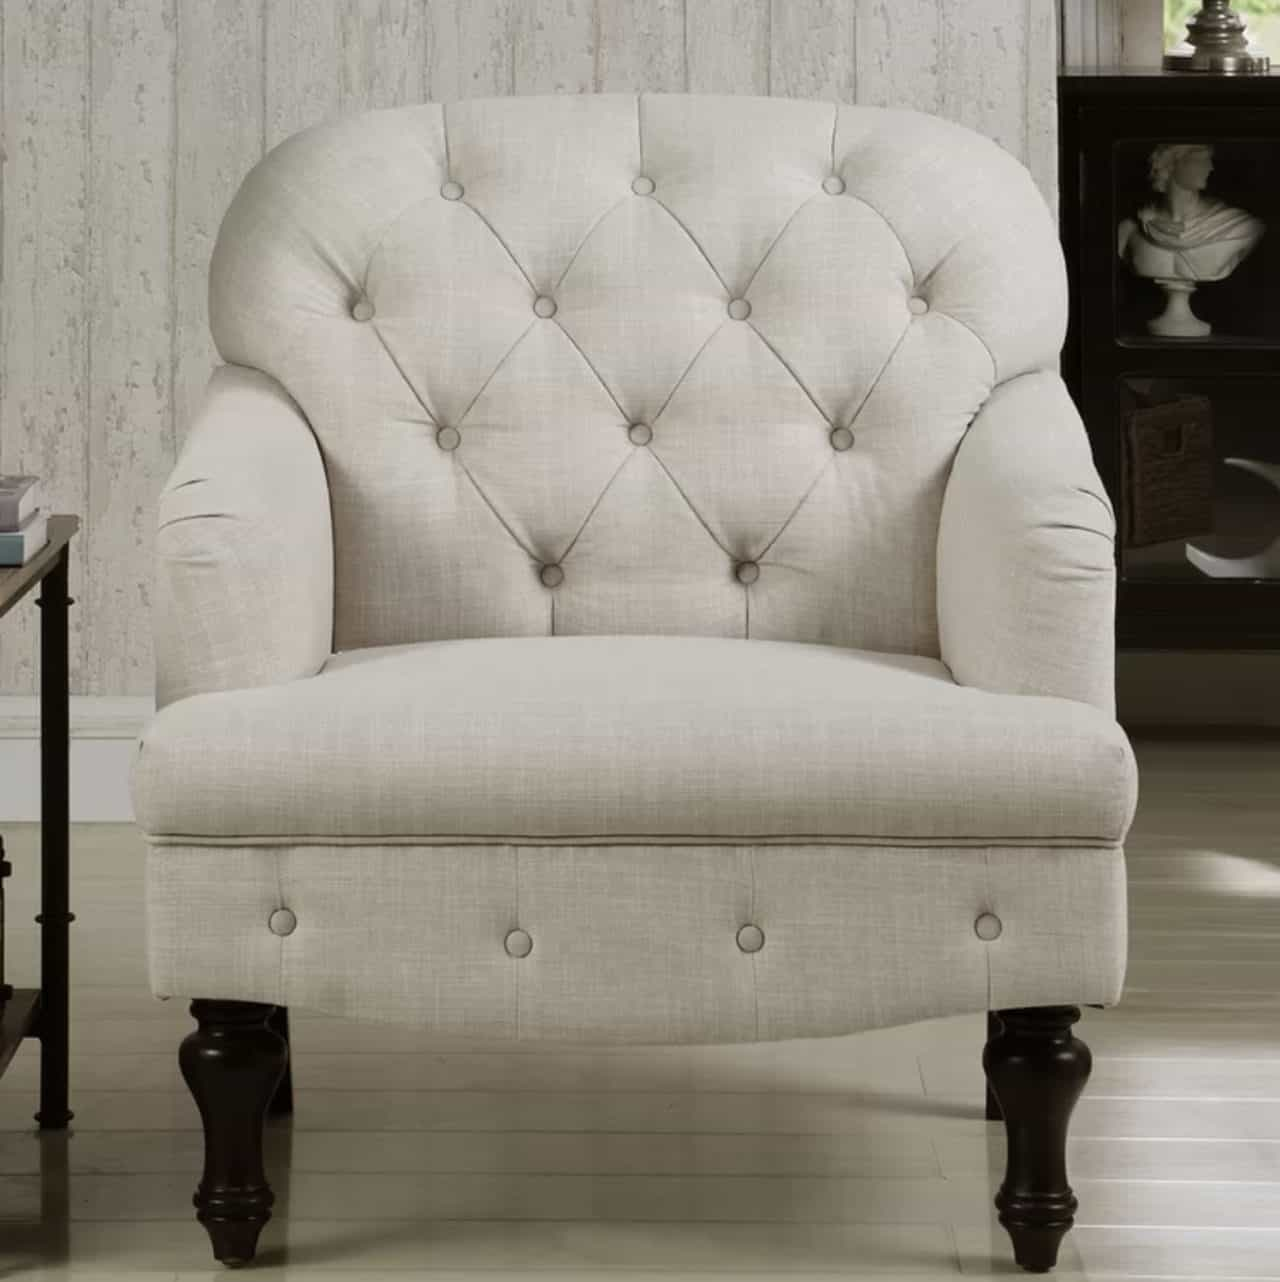 Awe Inspiring Where To Find Beautiful Inexpensive Farmhouse Tufted Armchairs Download Free Architecture Designs Embacsunscenecom